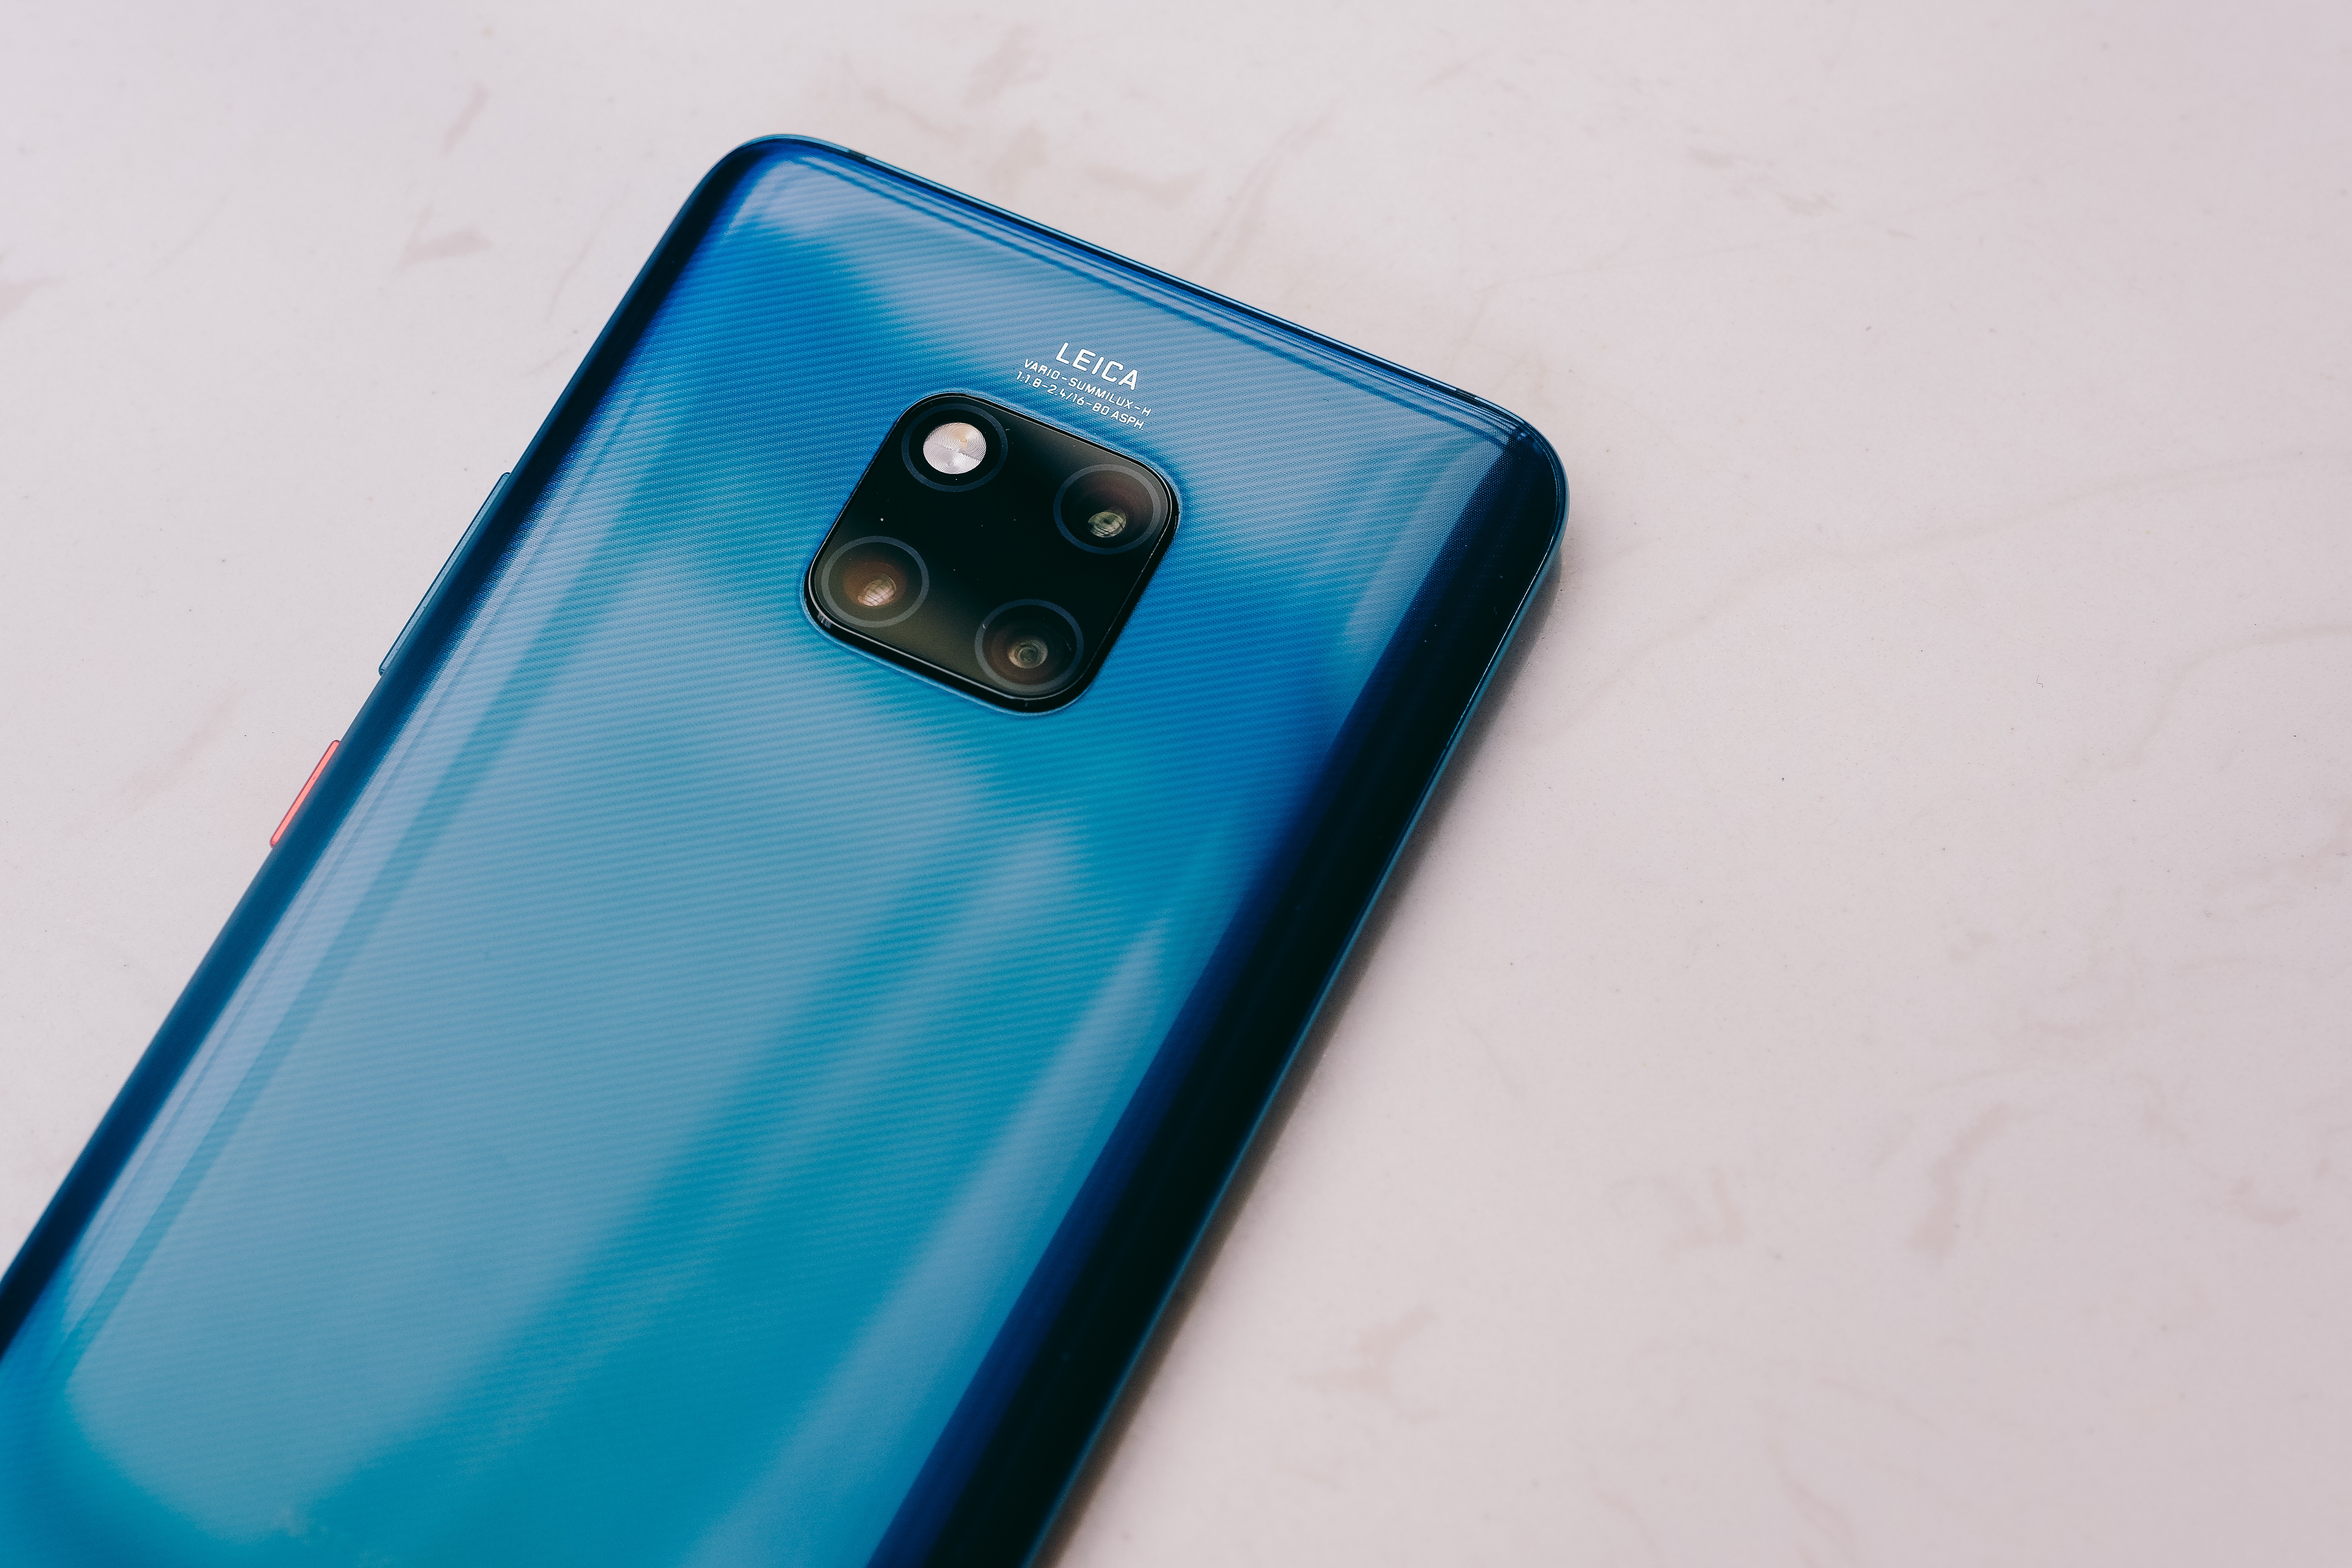 Report: Huawei Has Developed Their Very Own OS Called